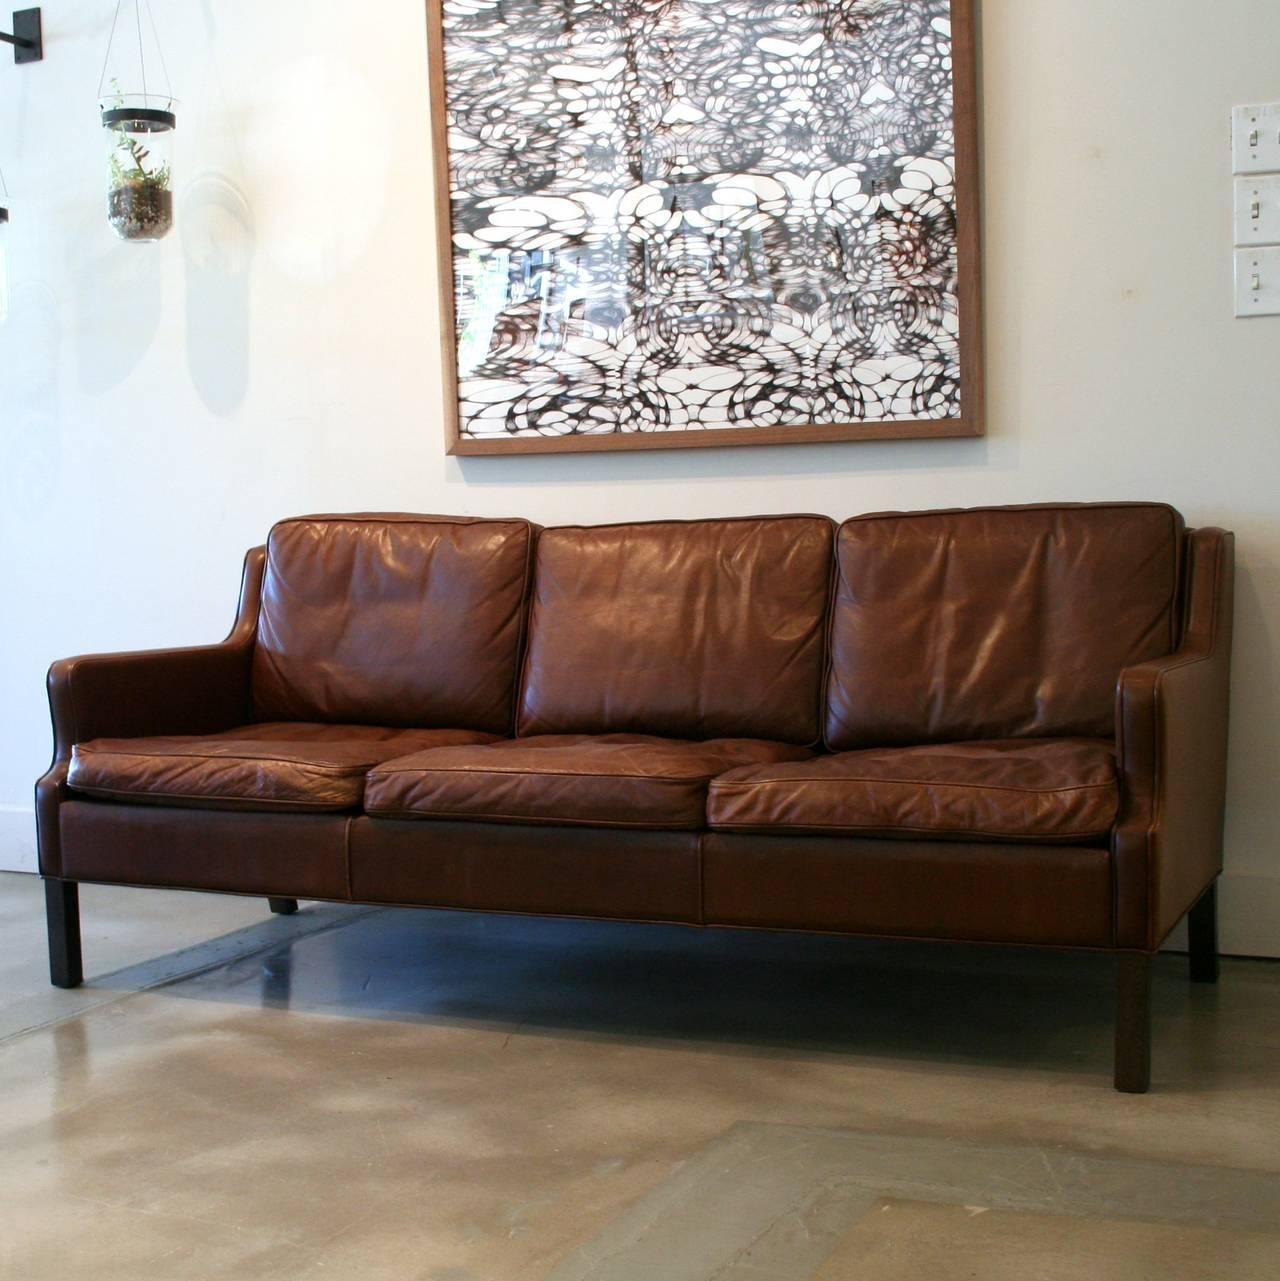 Vintage Danish Brown Leather Sofa At 1Stdibs with regard to Danish Leather Sofas